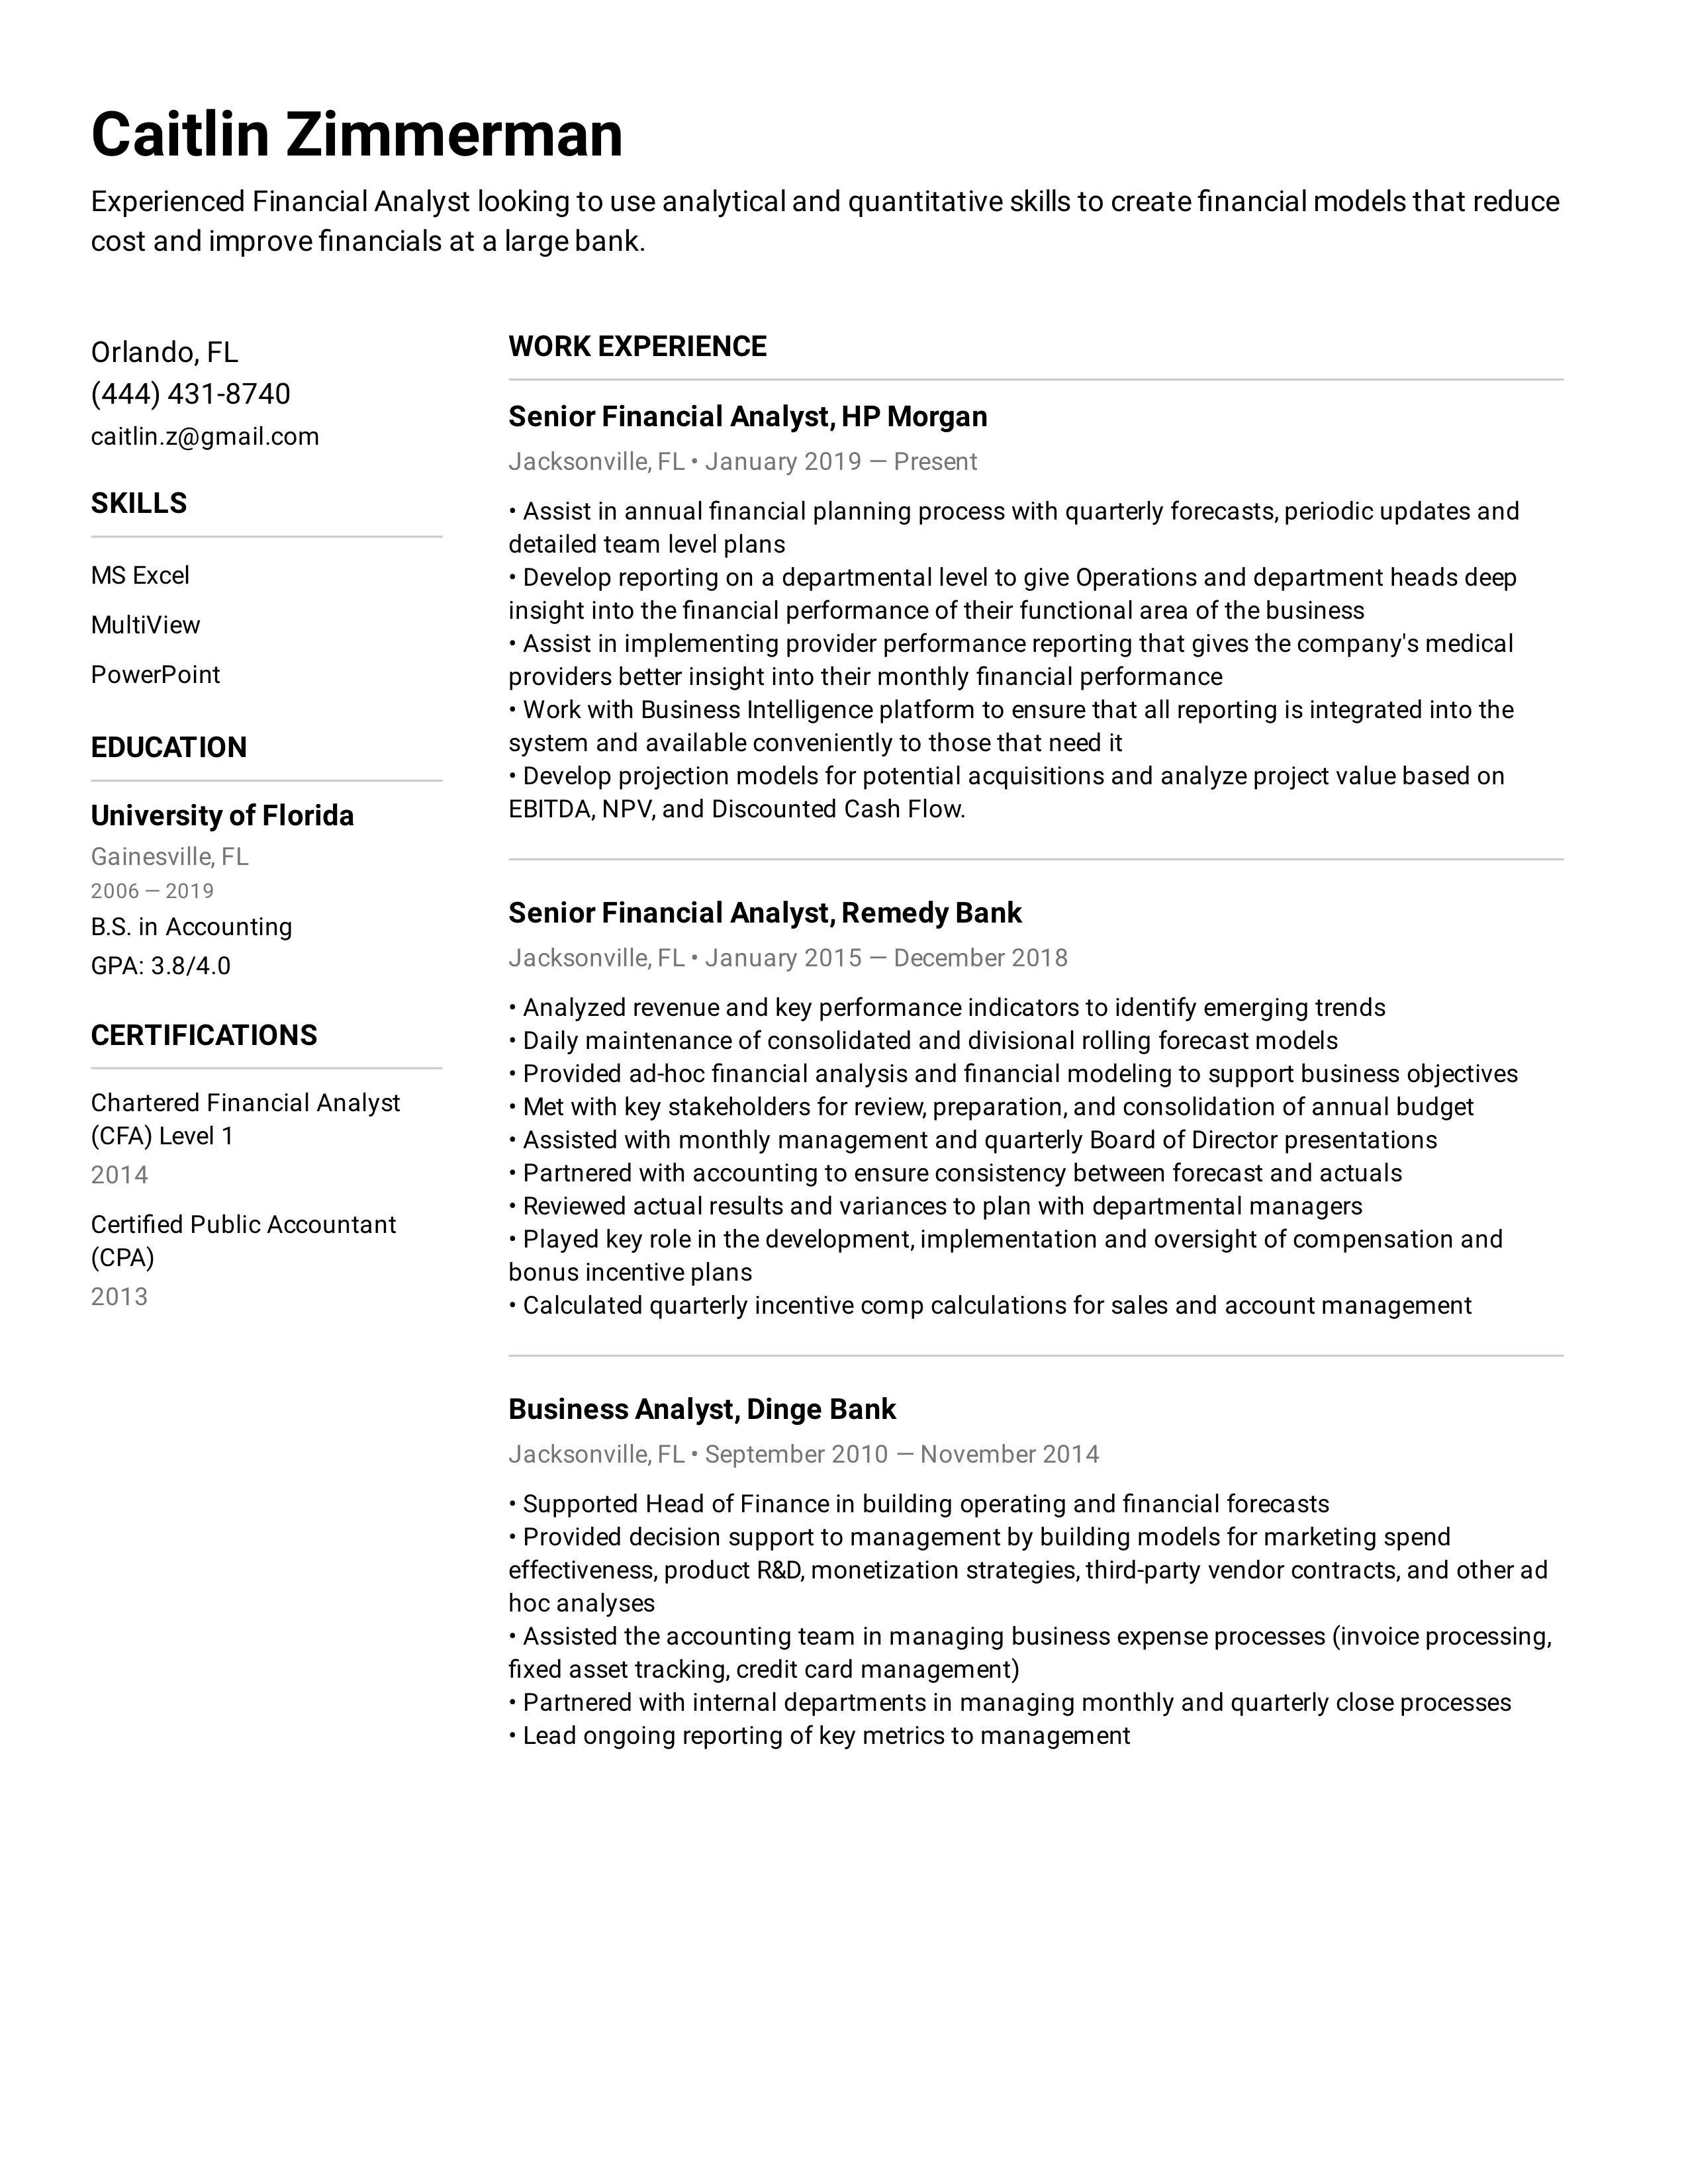 Financial Analyst Resume Example in 2020 Financial